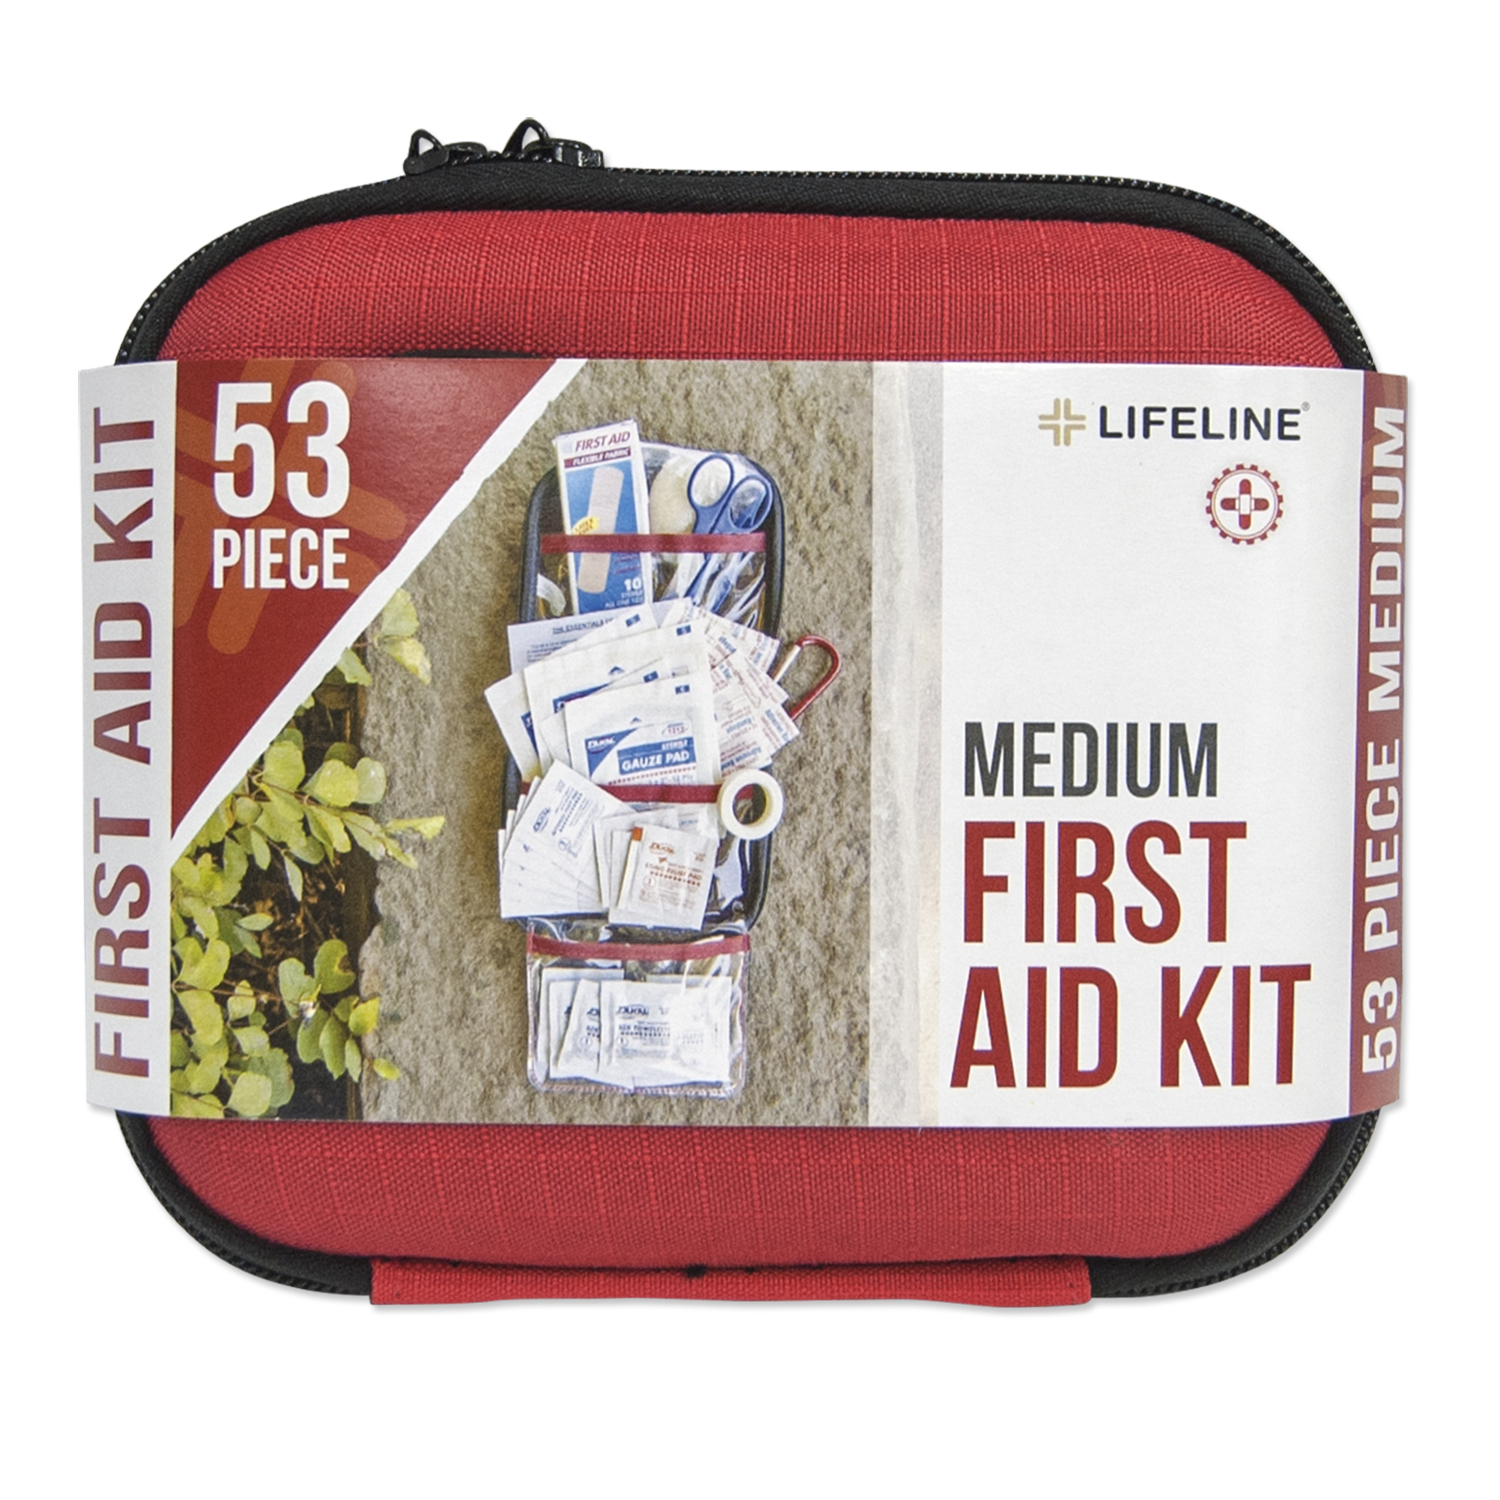 Swift First Aid 53 Piece Kit